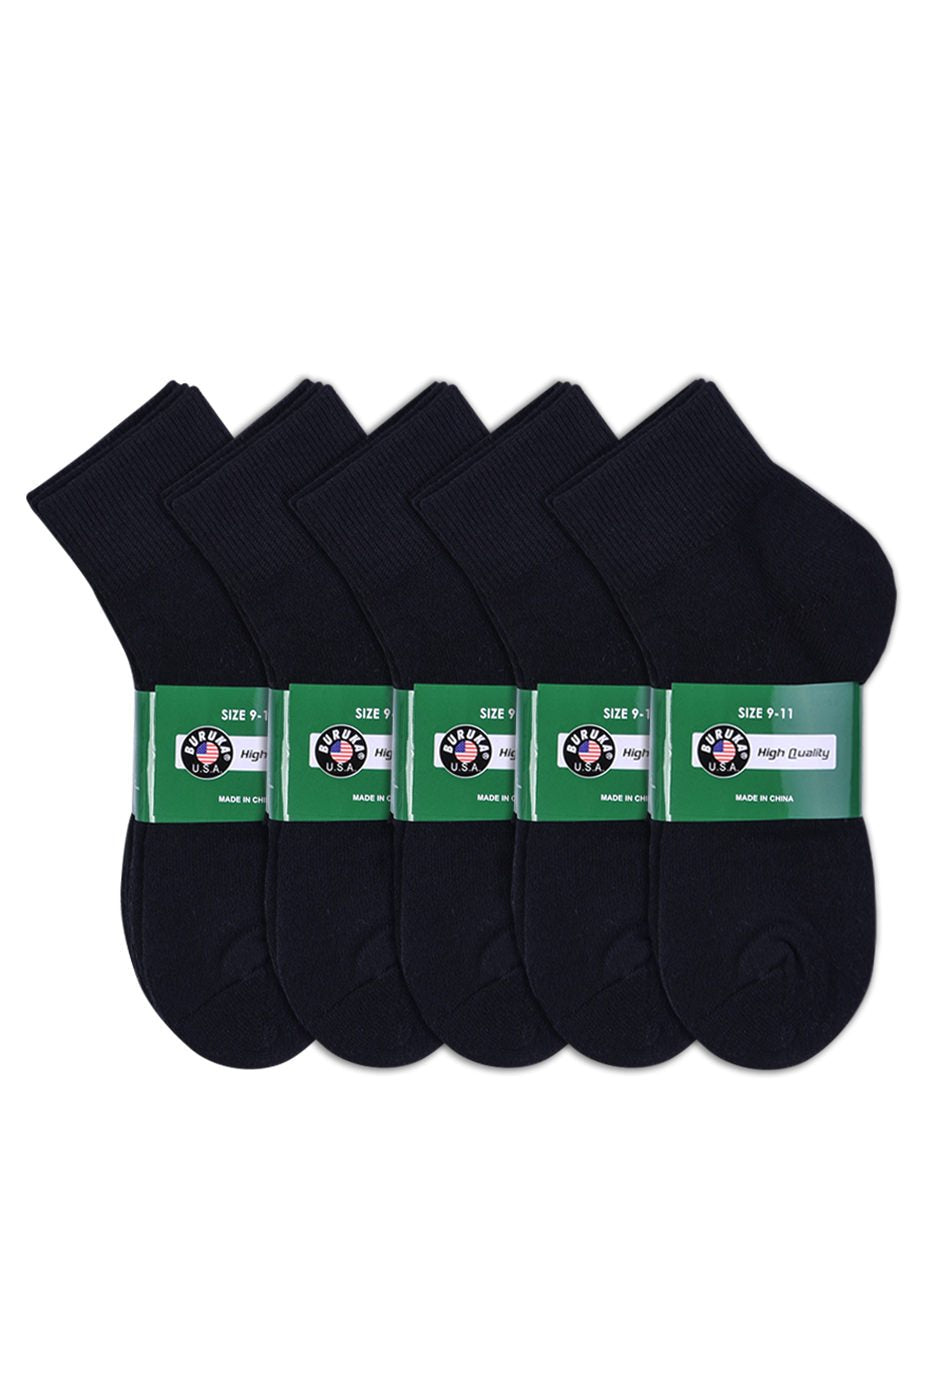 12 PACK OF QUARTER SPORTS SOCKS - Ward and Parish